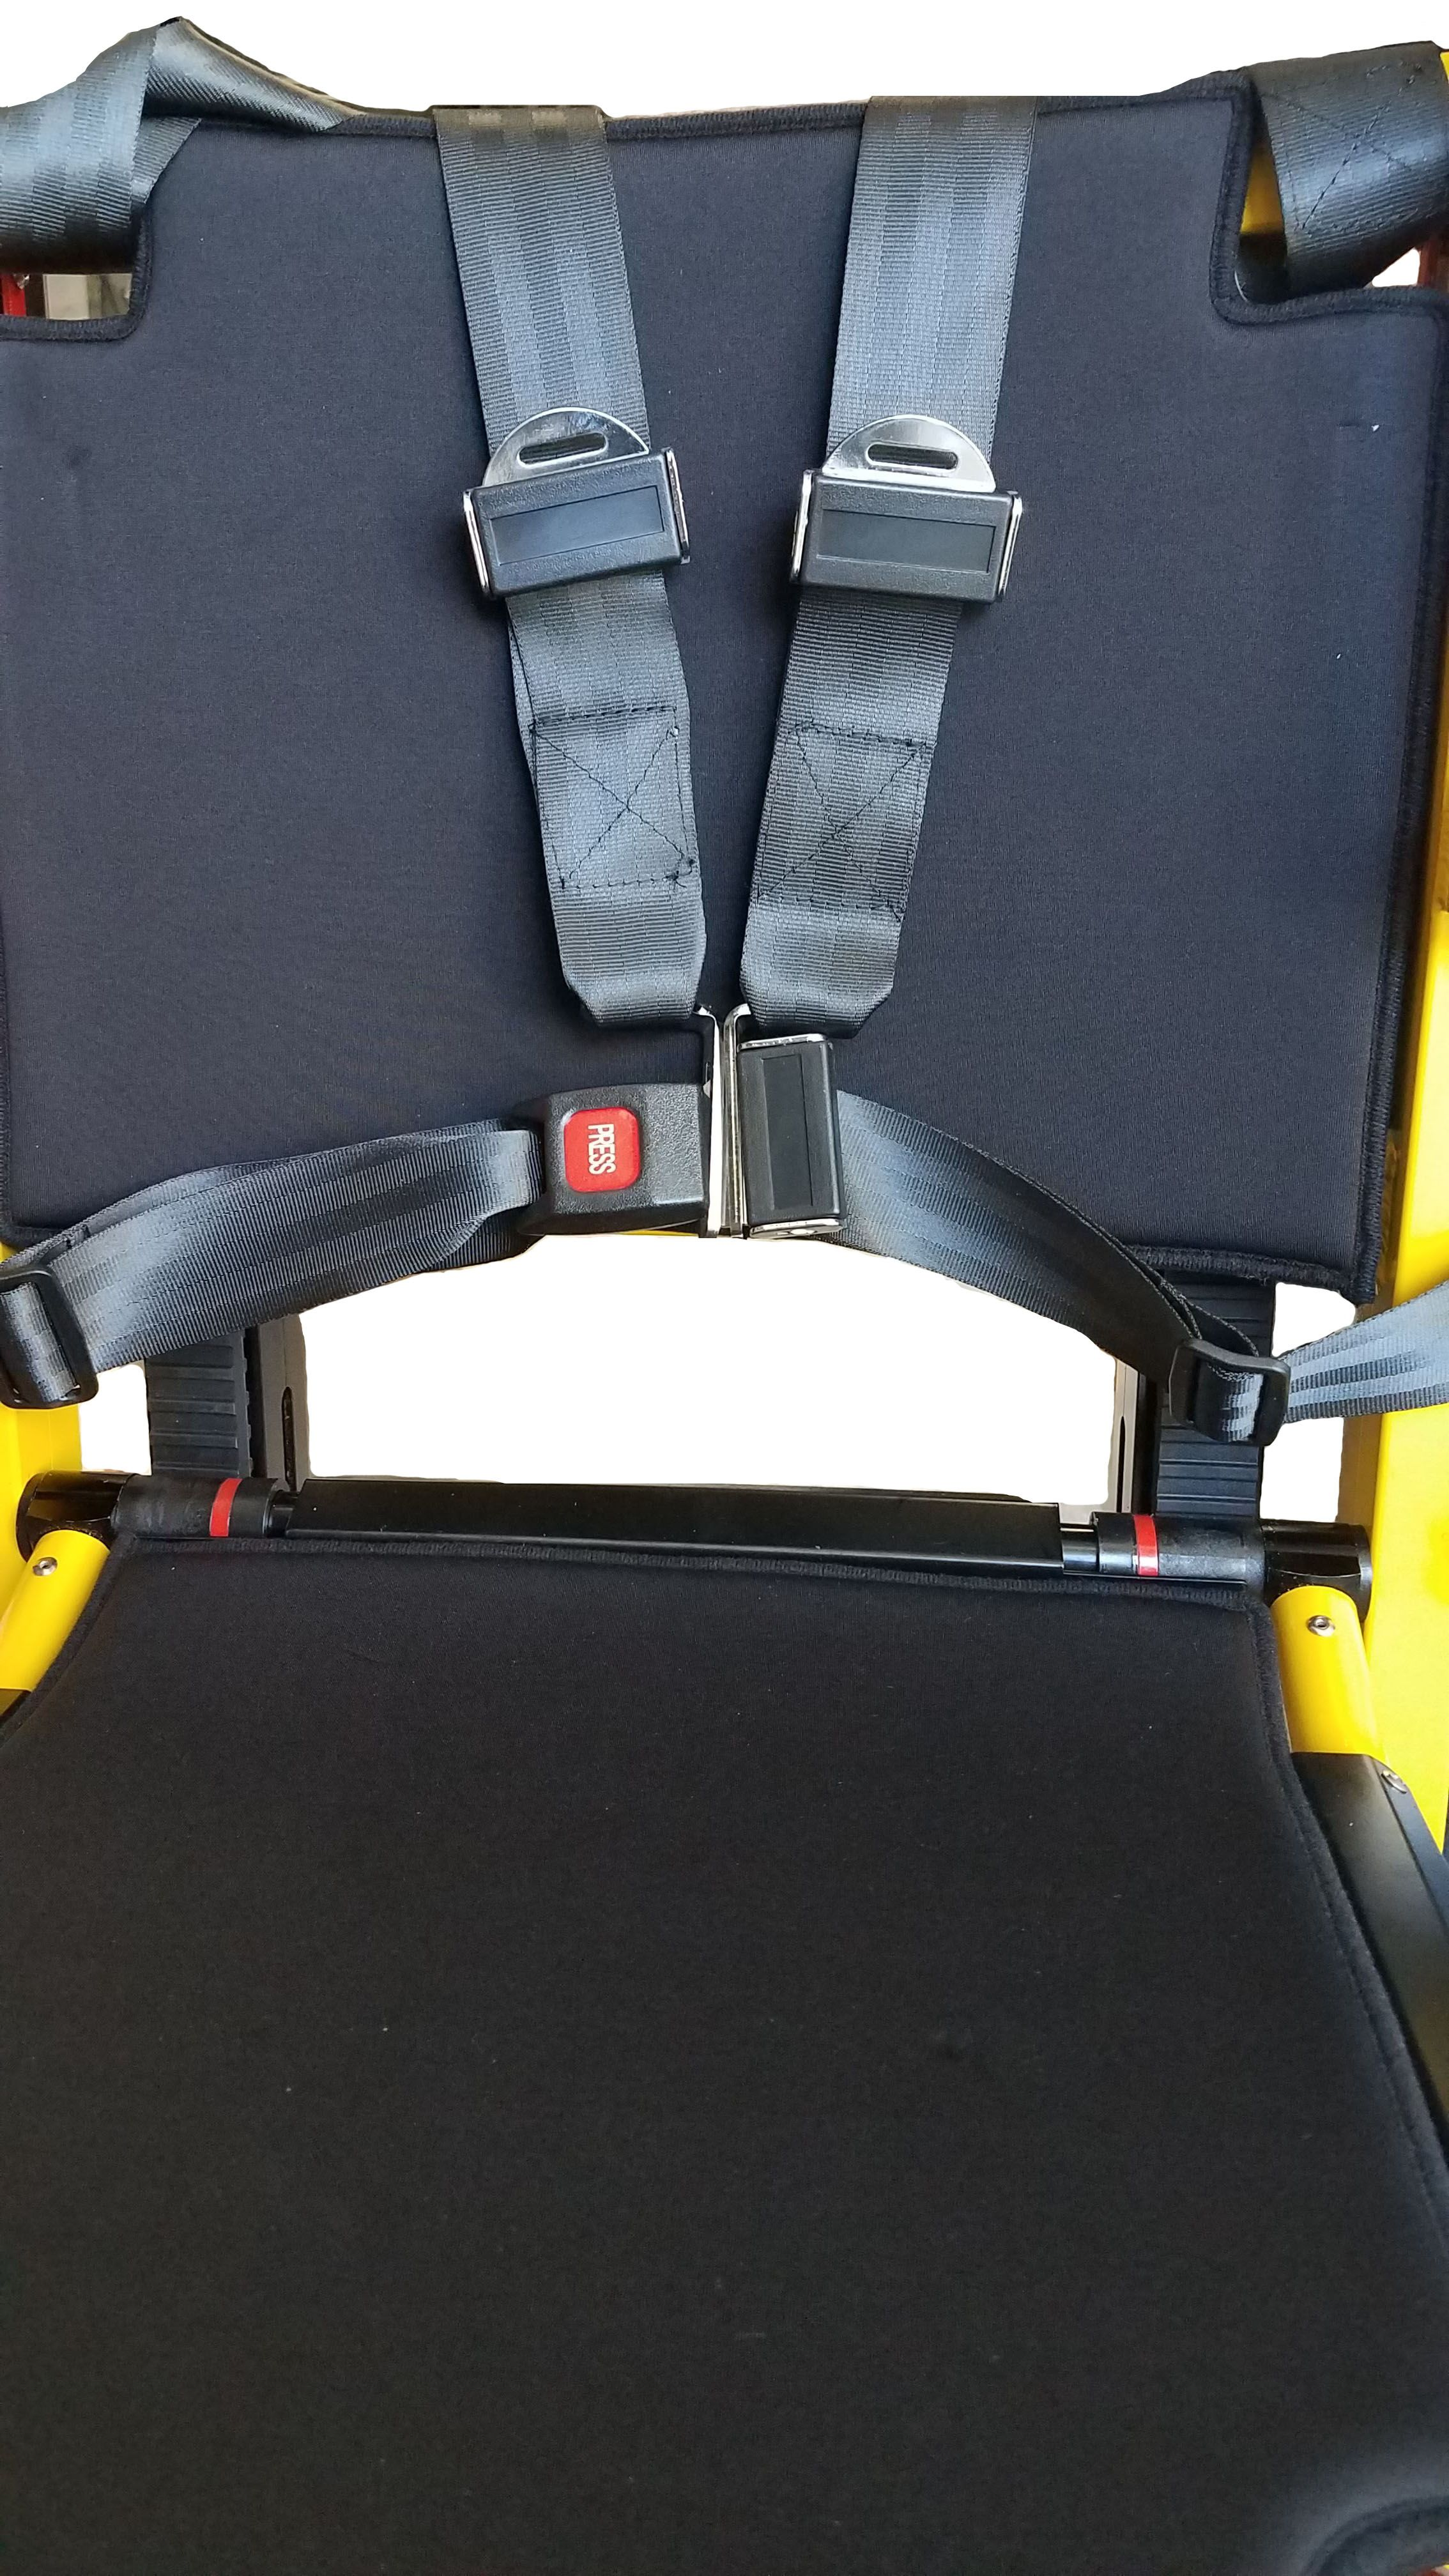 Shoulder Belts for Stair Chairs